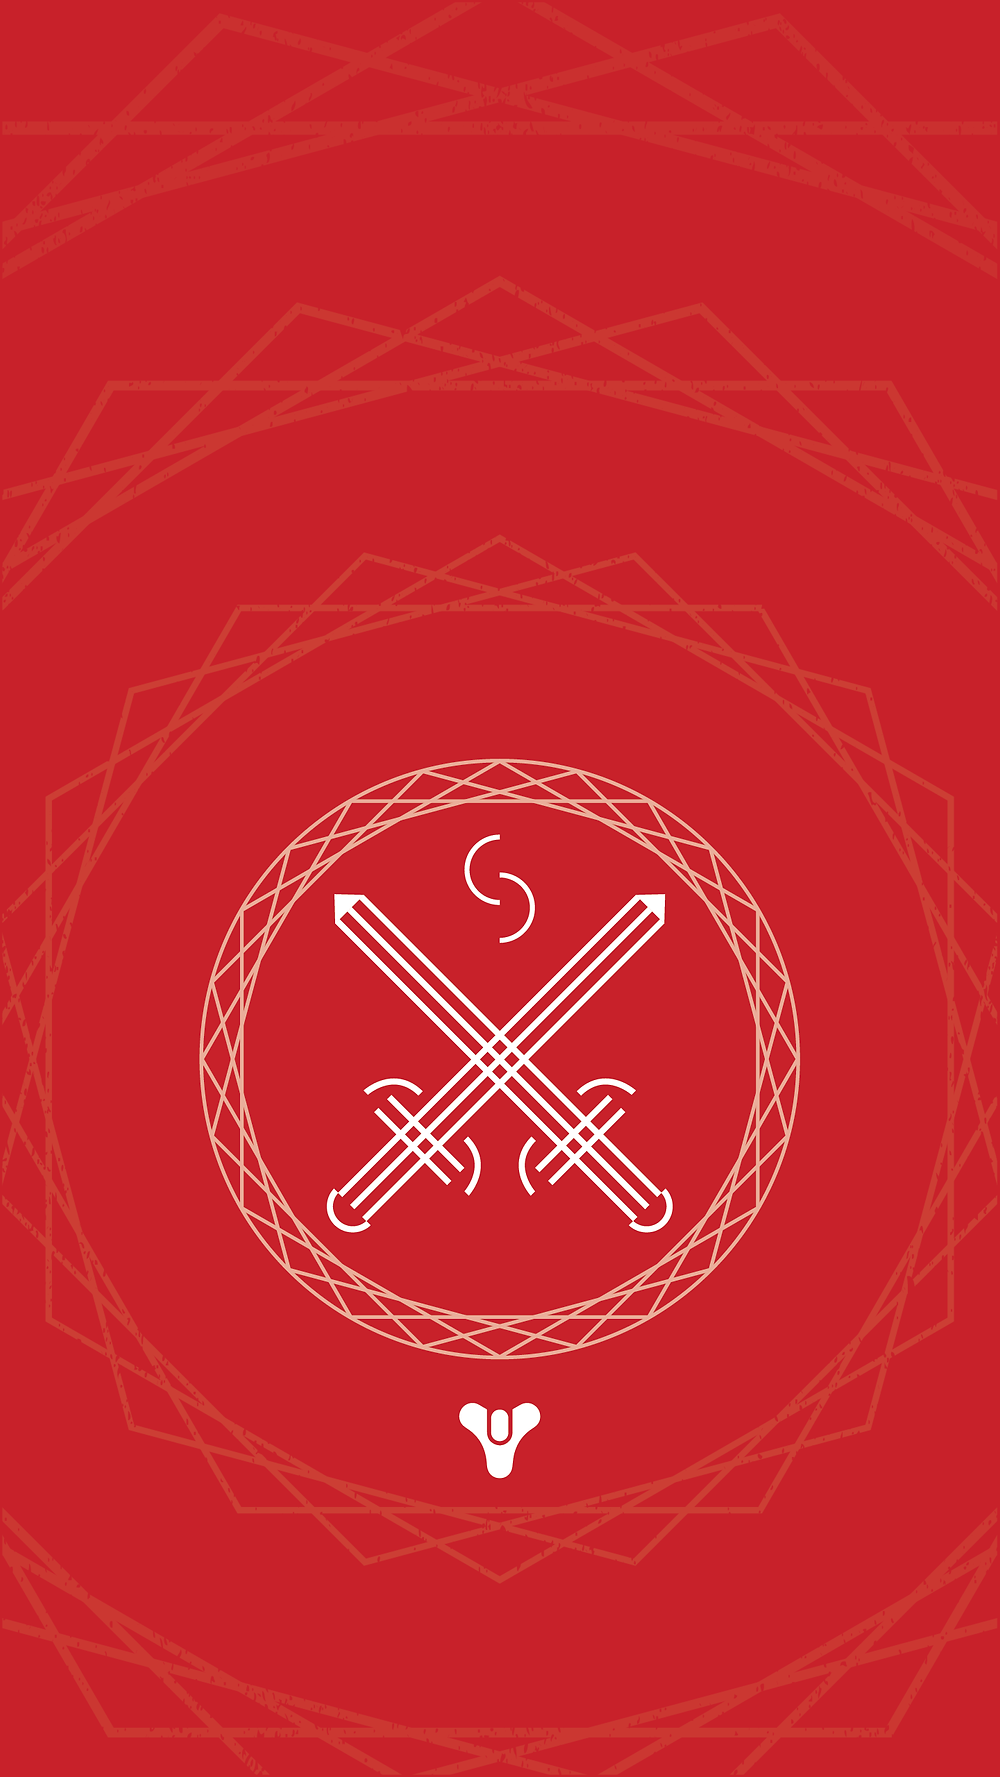 CRUCIBLE (Red) - 1440x2560.png